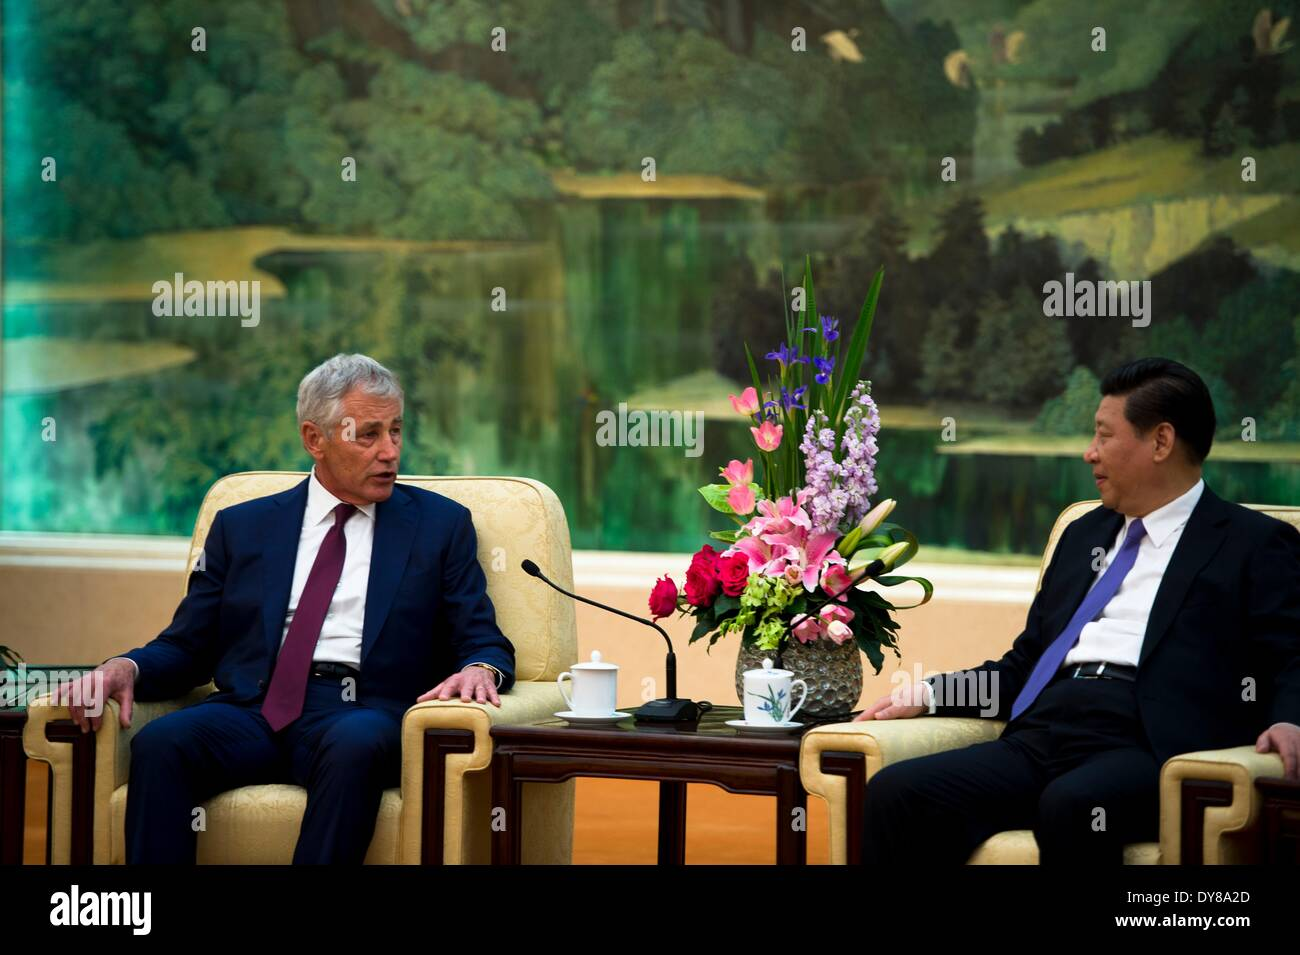 US Secretary of Defense Chuck Hagel meets with Chinese President Xi Jinping at the Great Hall of the People April 9, 2014 in Beijing, China. - Stock Image